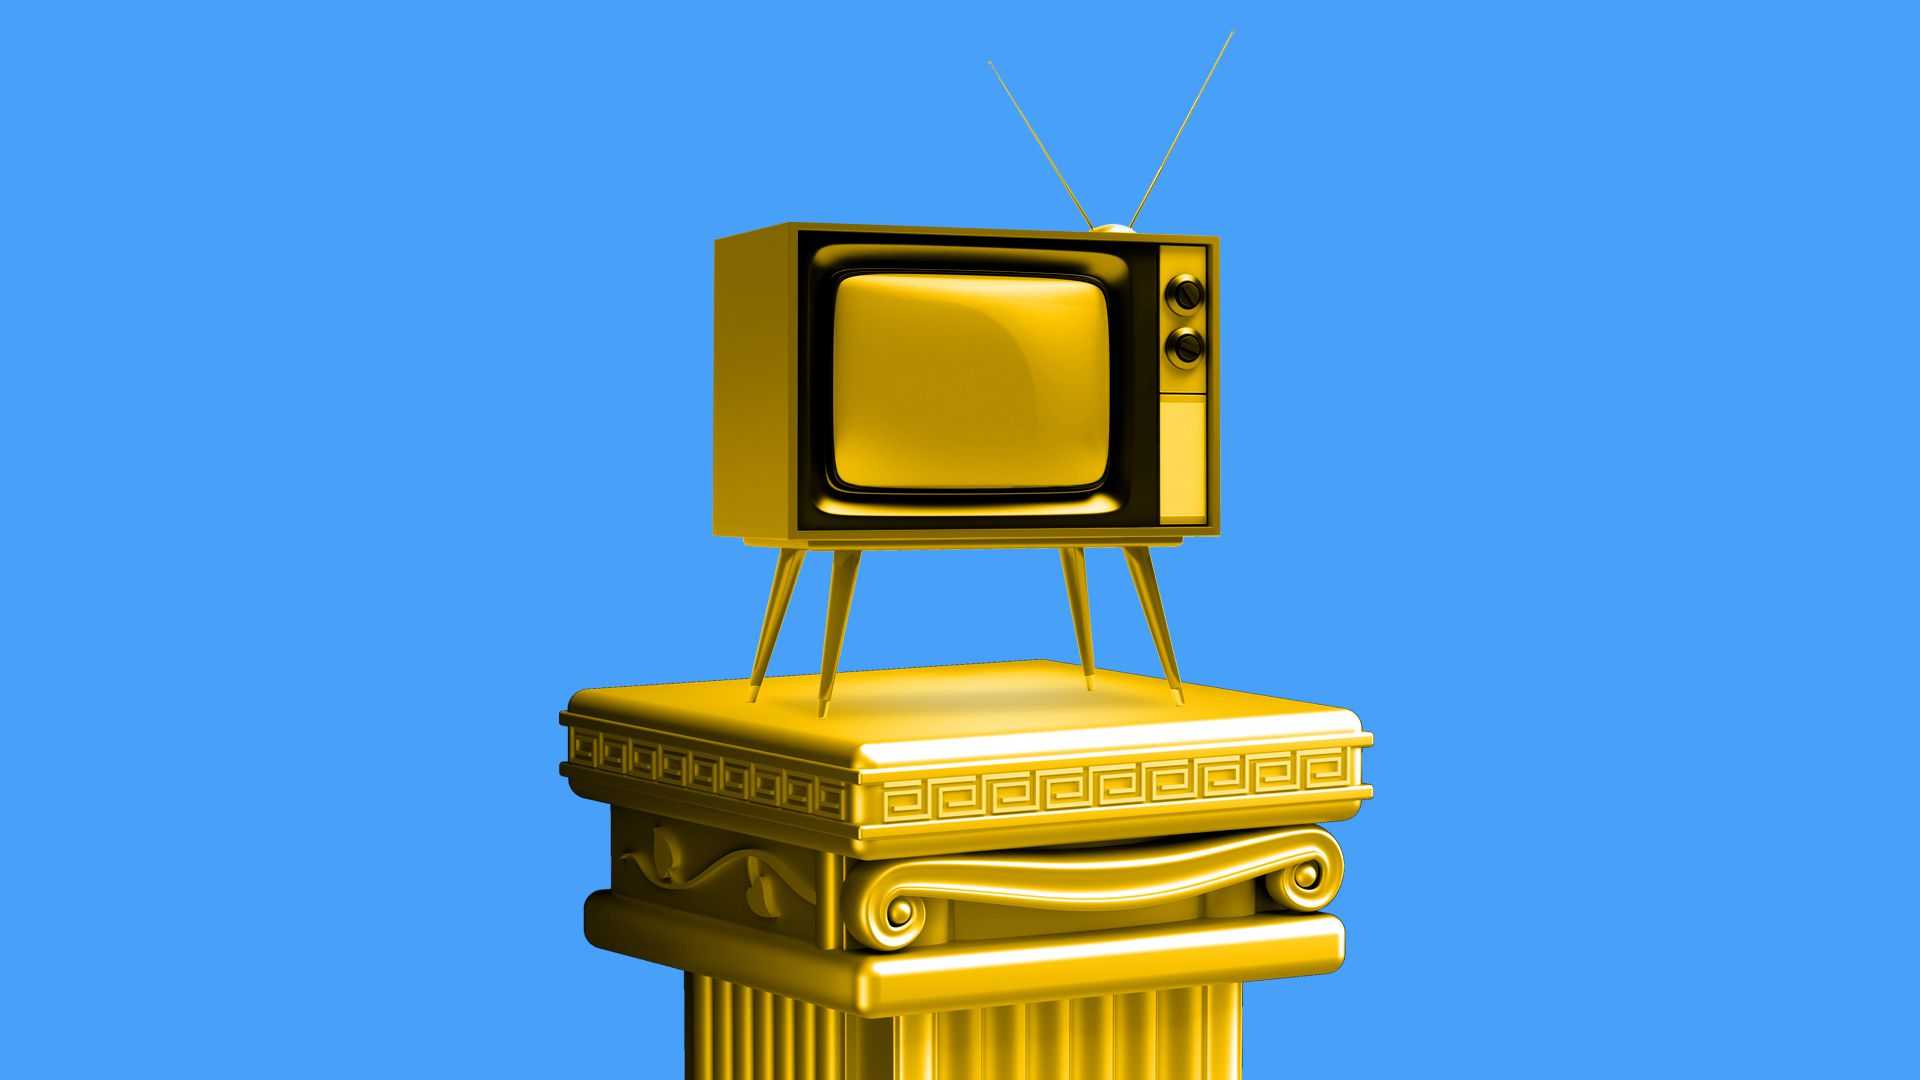 Illustration of golden television on top of pedestal.